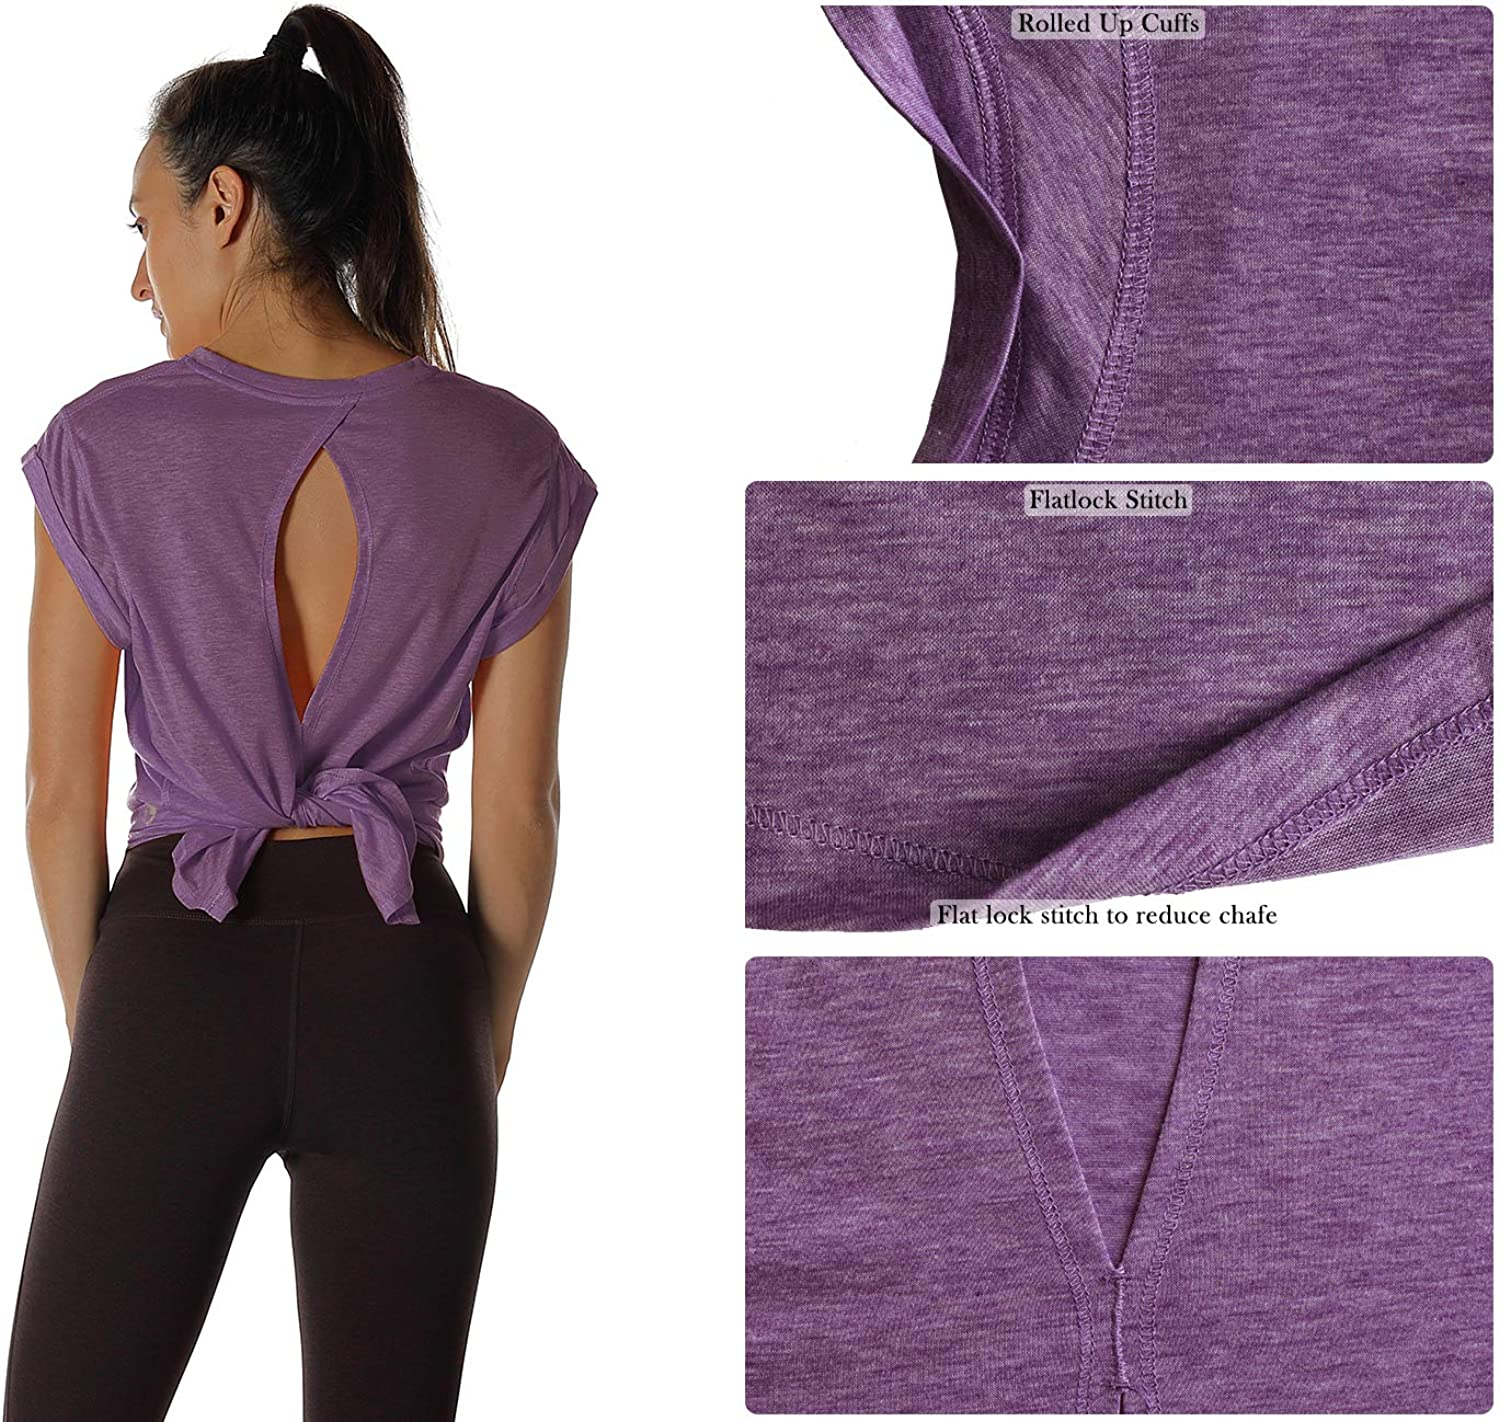 icyzone Open Back Workout Top Shirts Yoga T-Shirts Activewear Exercise Tops for Women